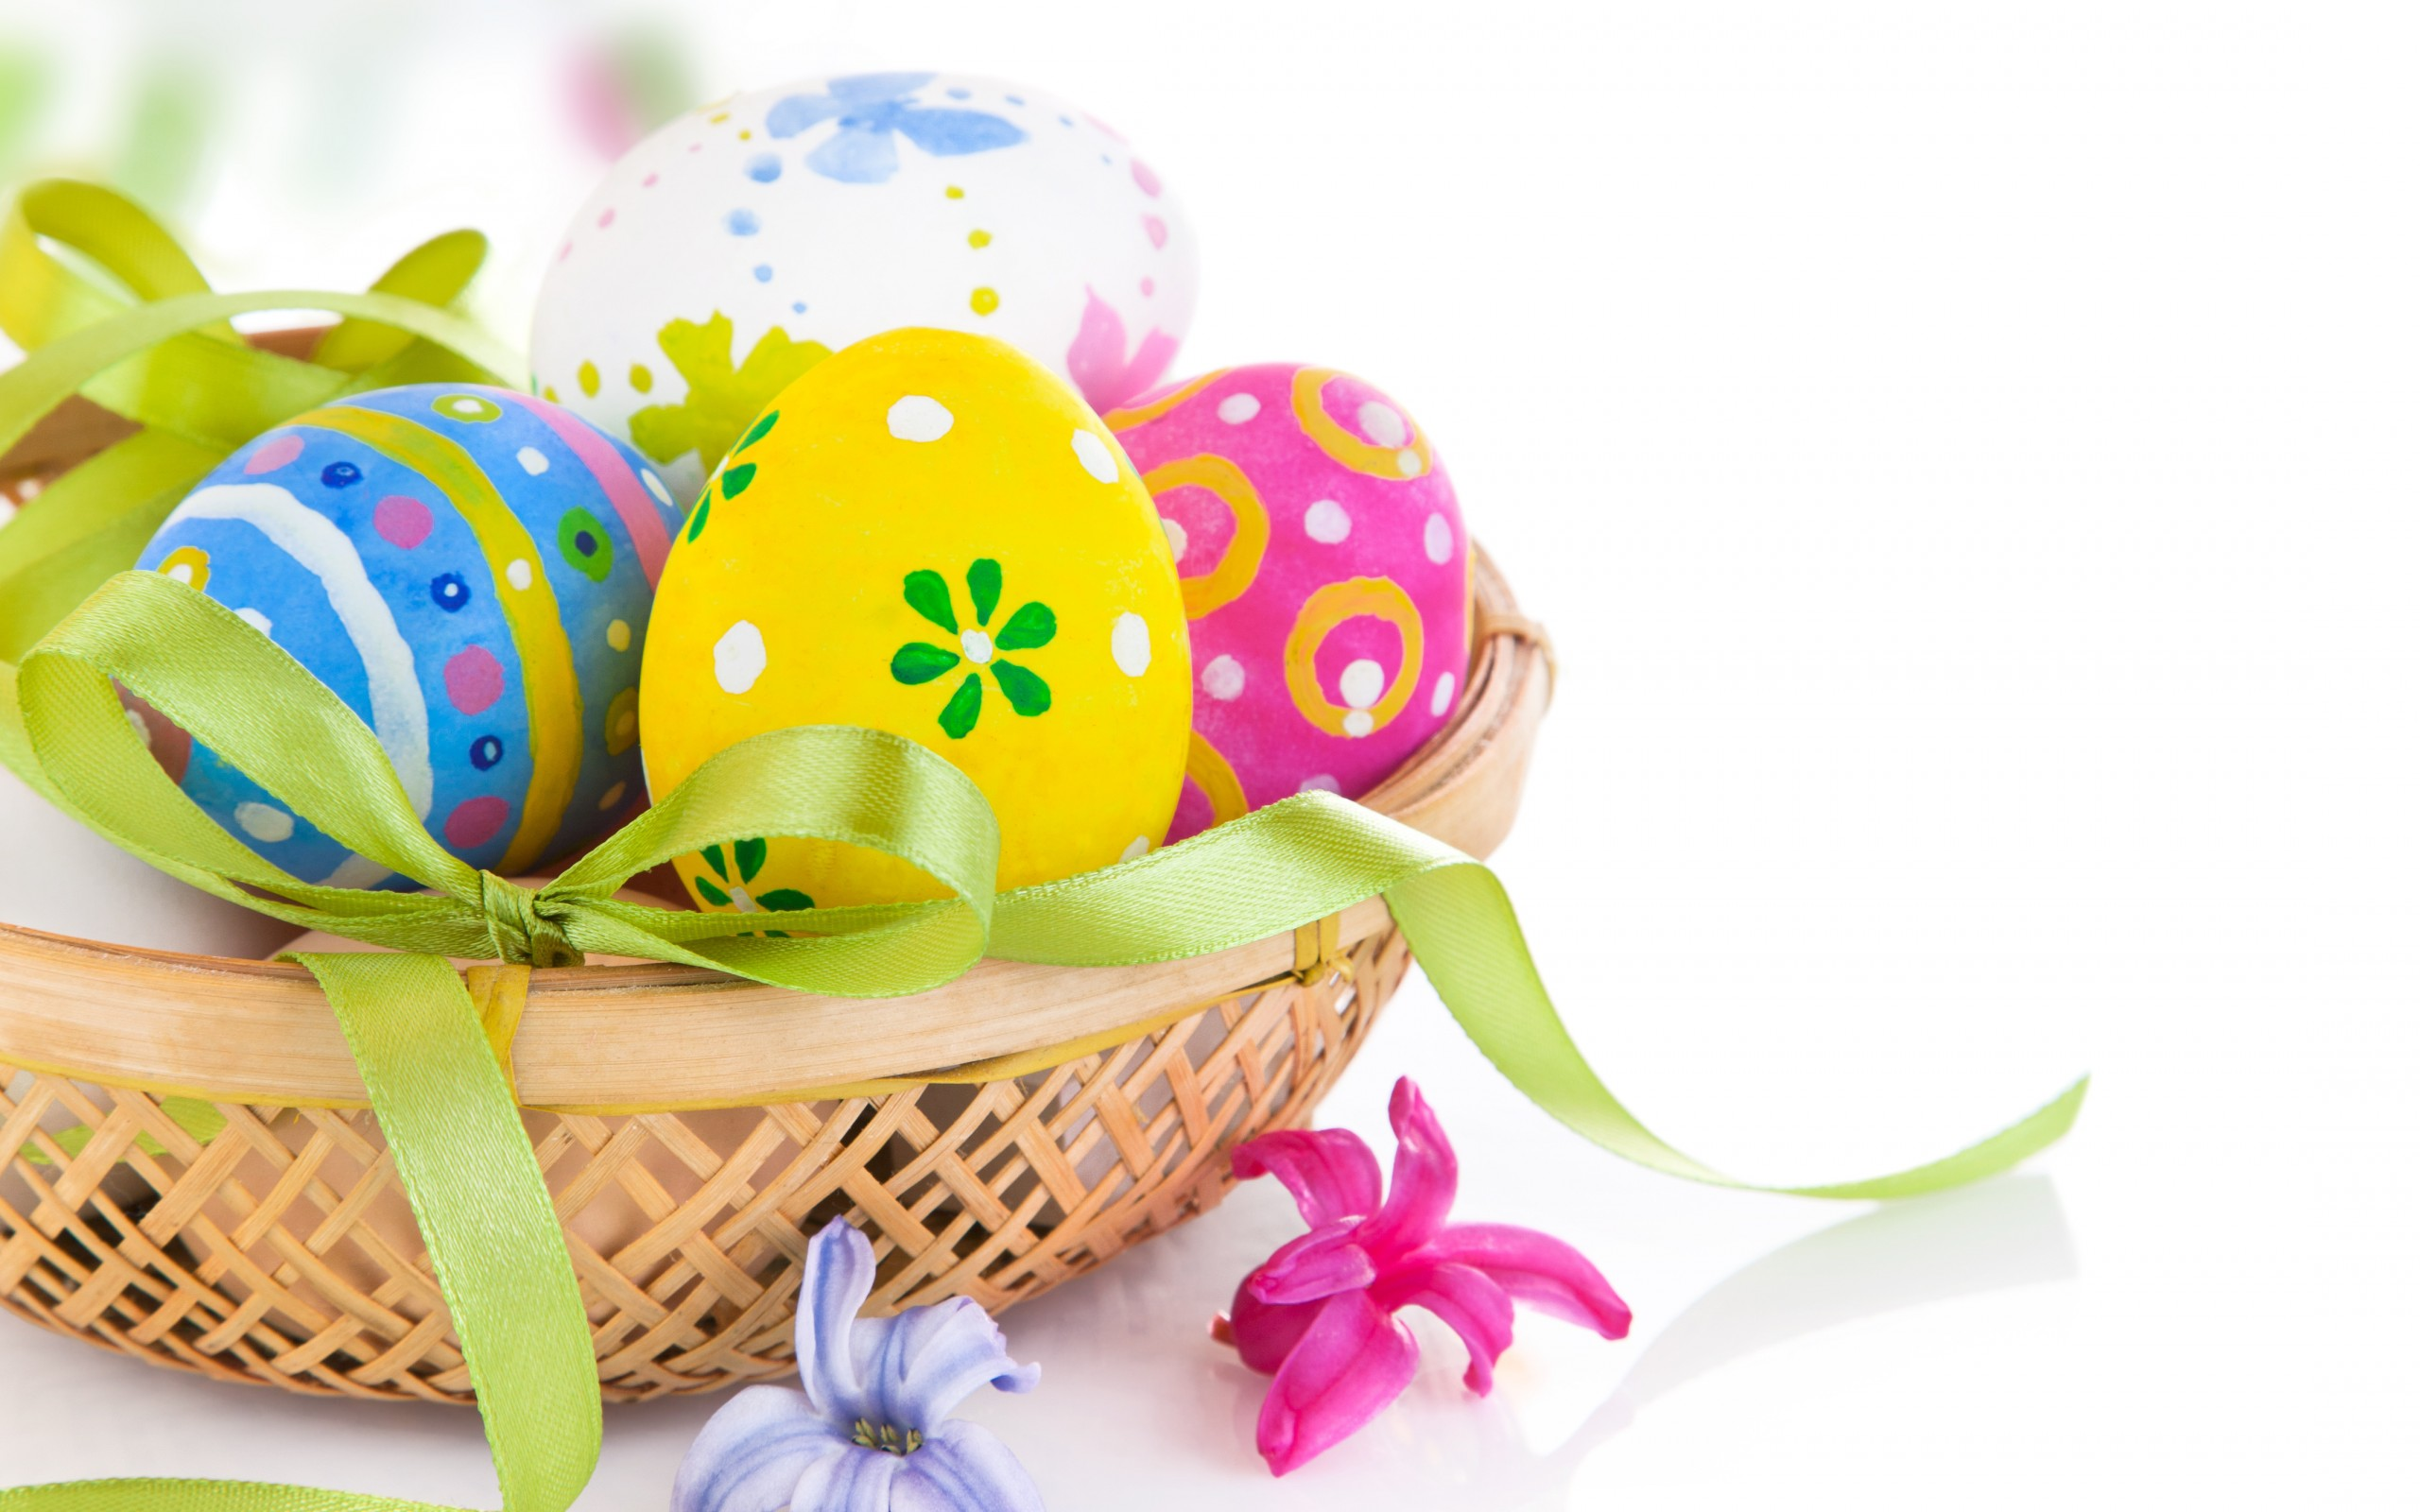 Spring Flowers And Easter Eggs Bowl Wallpapers